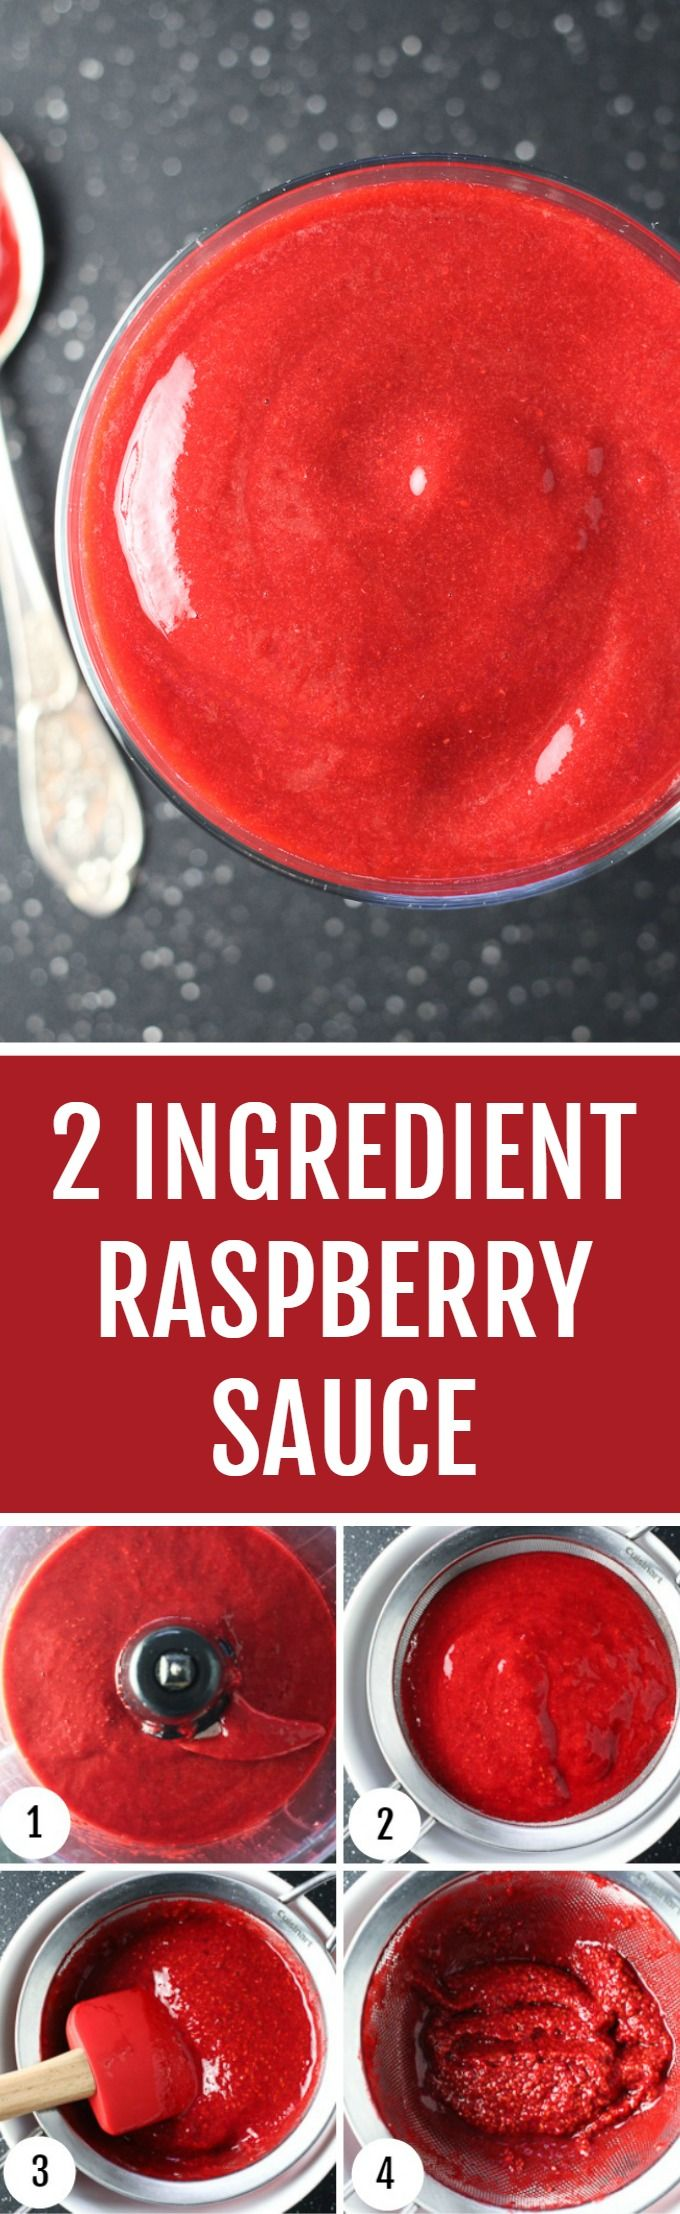 Make this silky and smooth raspberry sauce in just 4 easy steps. No cooking required, and you only need 2 ingredients. Can be served with a variety of dishes.